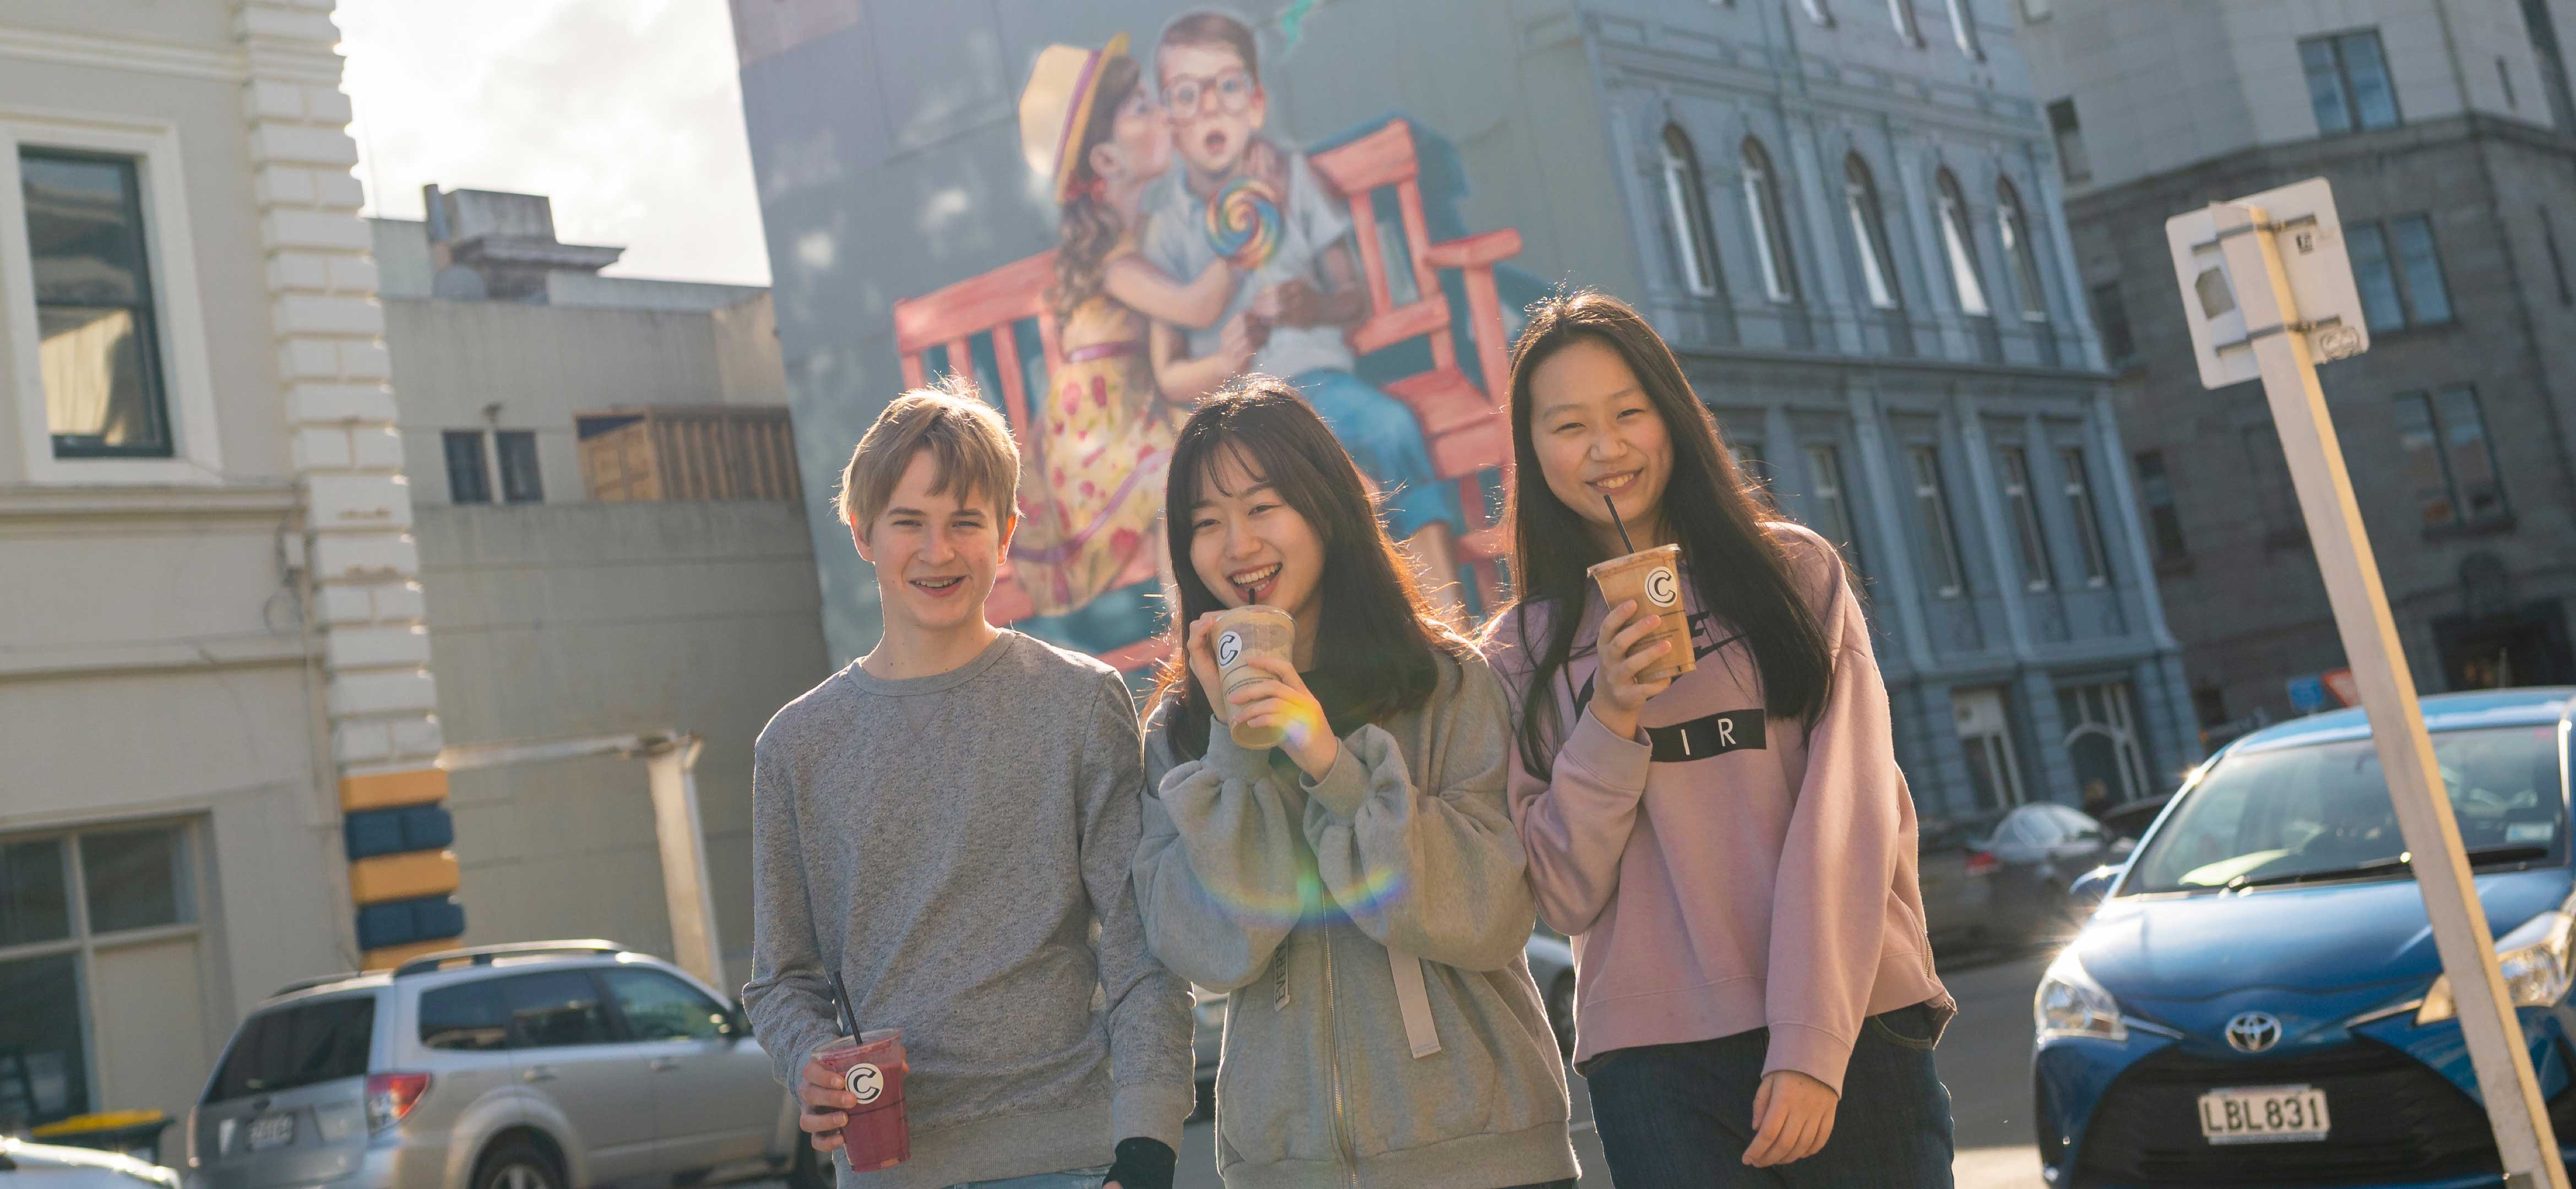 Dunedin students enjoying a drink in front of street art